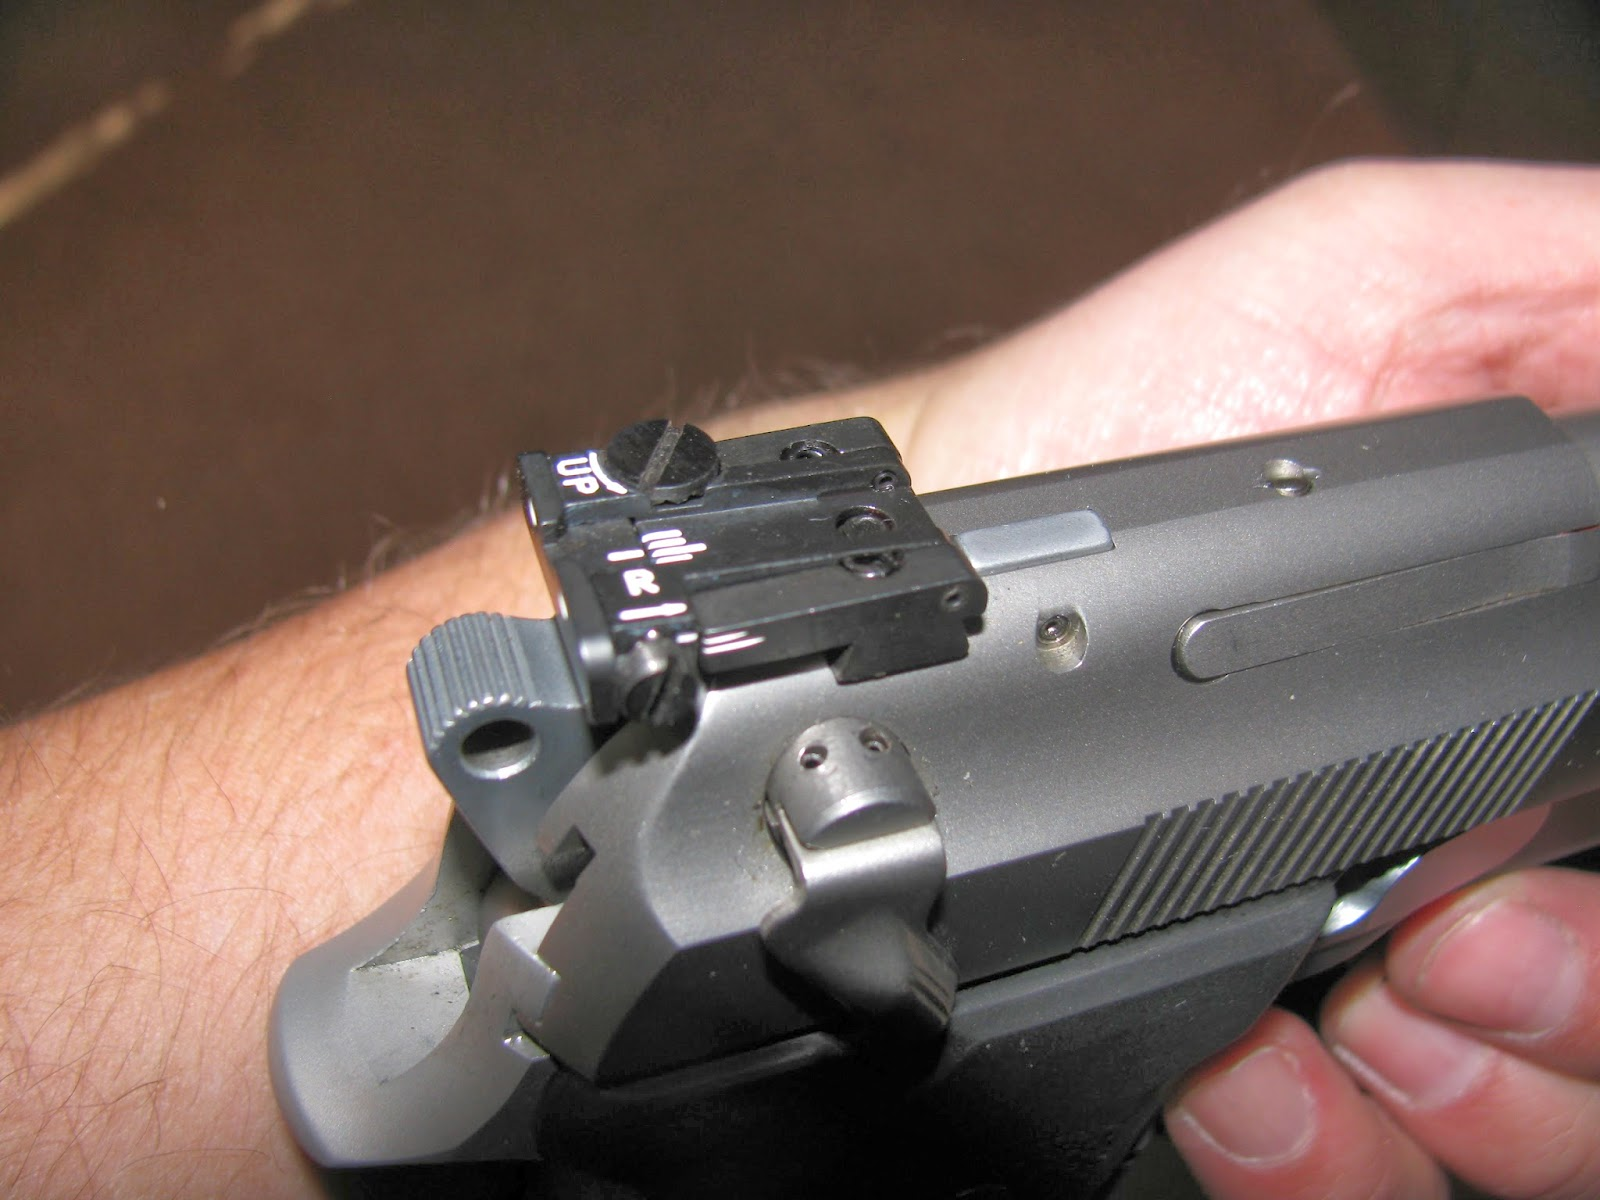 how to change rear sights on beretta 92fs